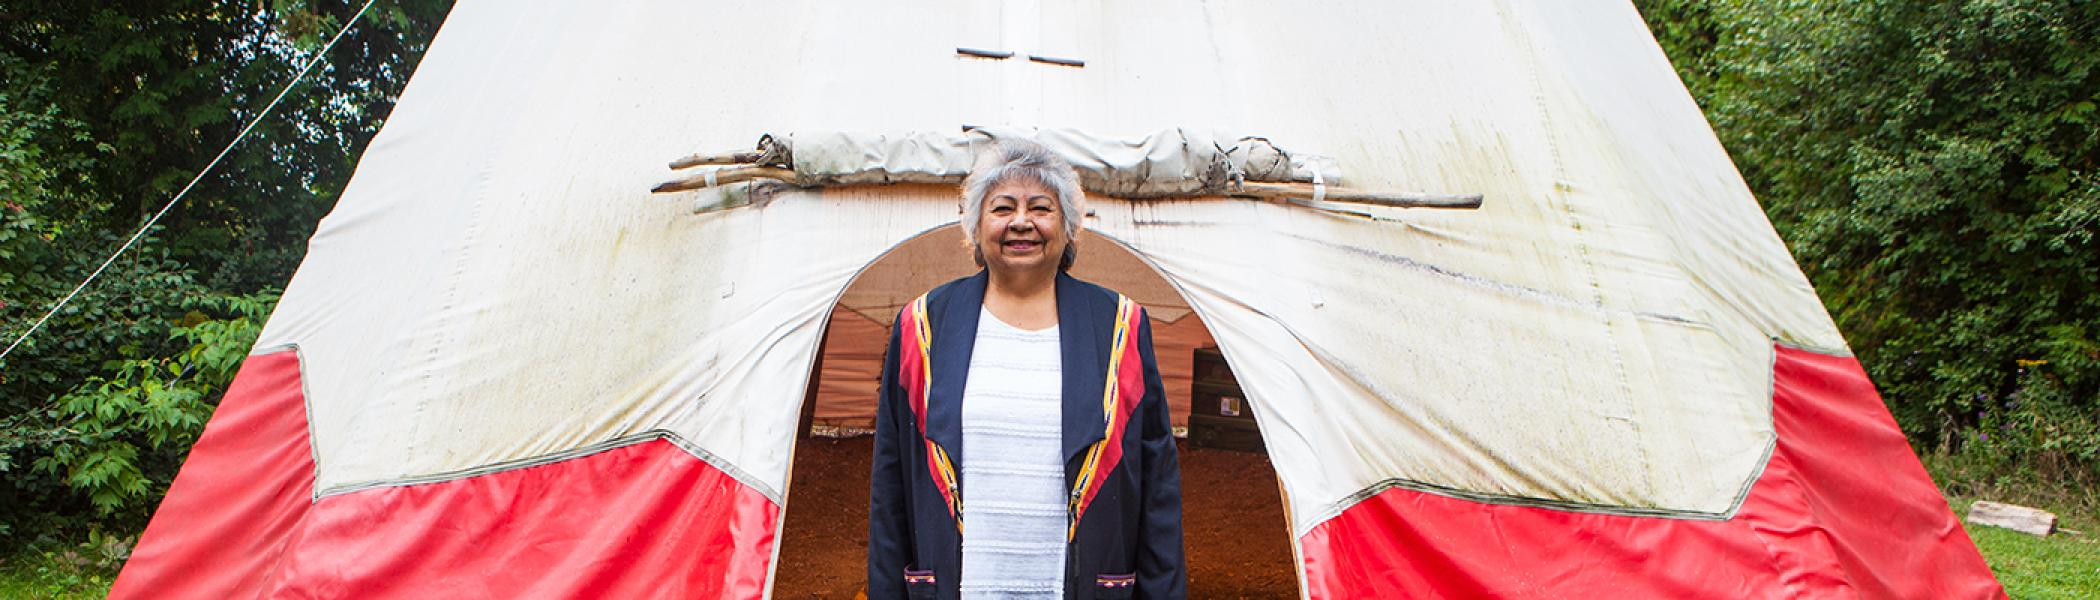 Shirley Williams standing in front of a teepee smiling at the camera